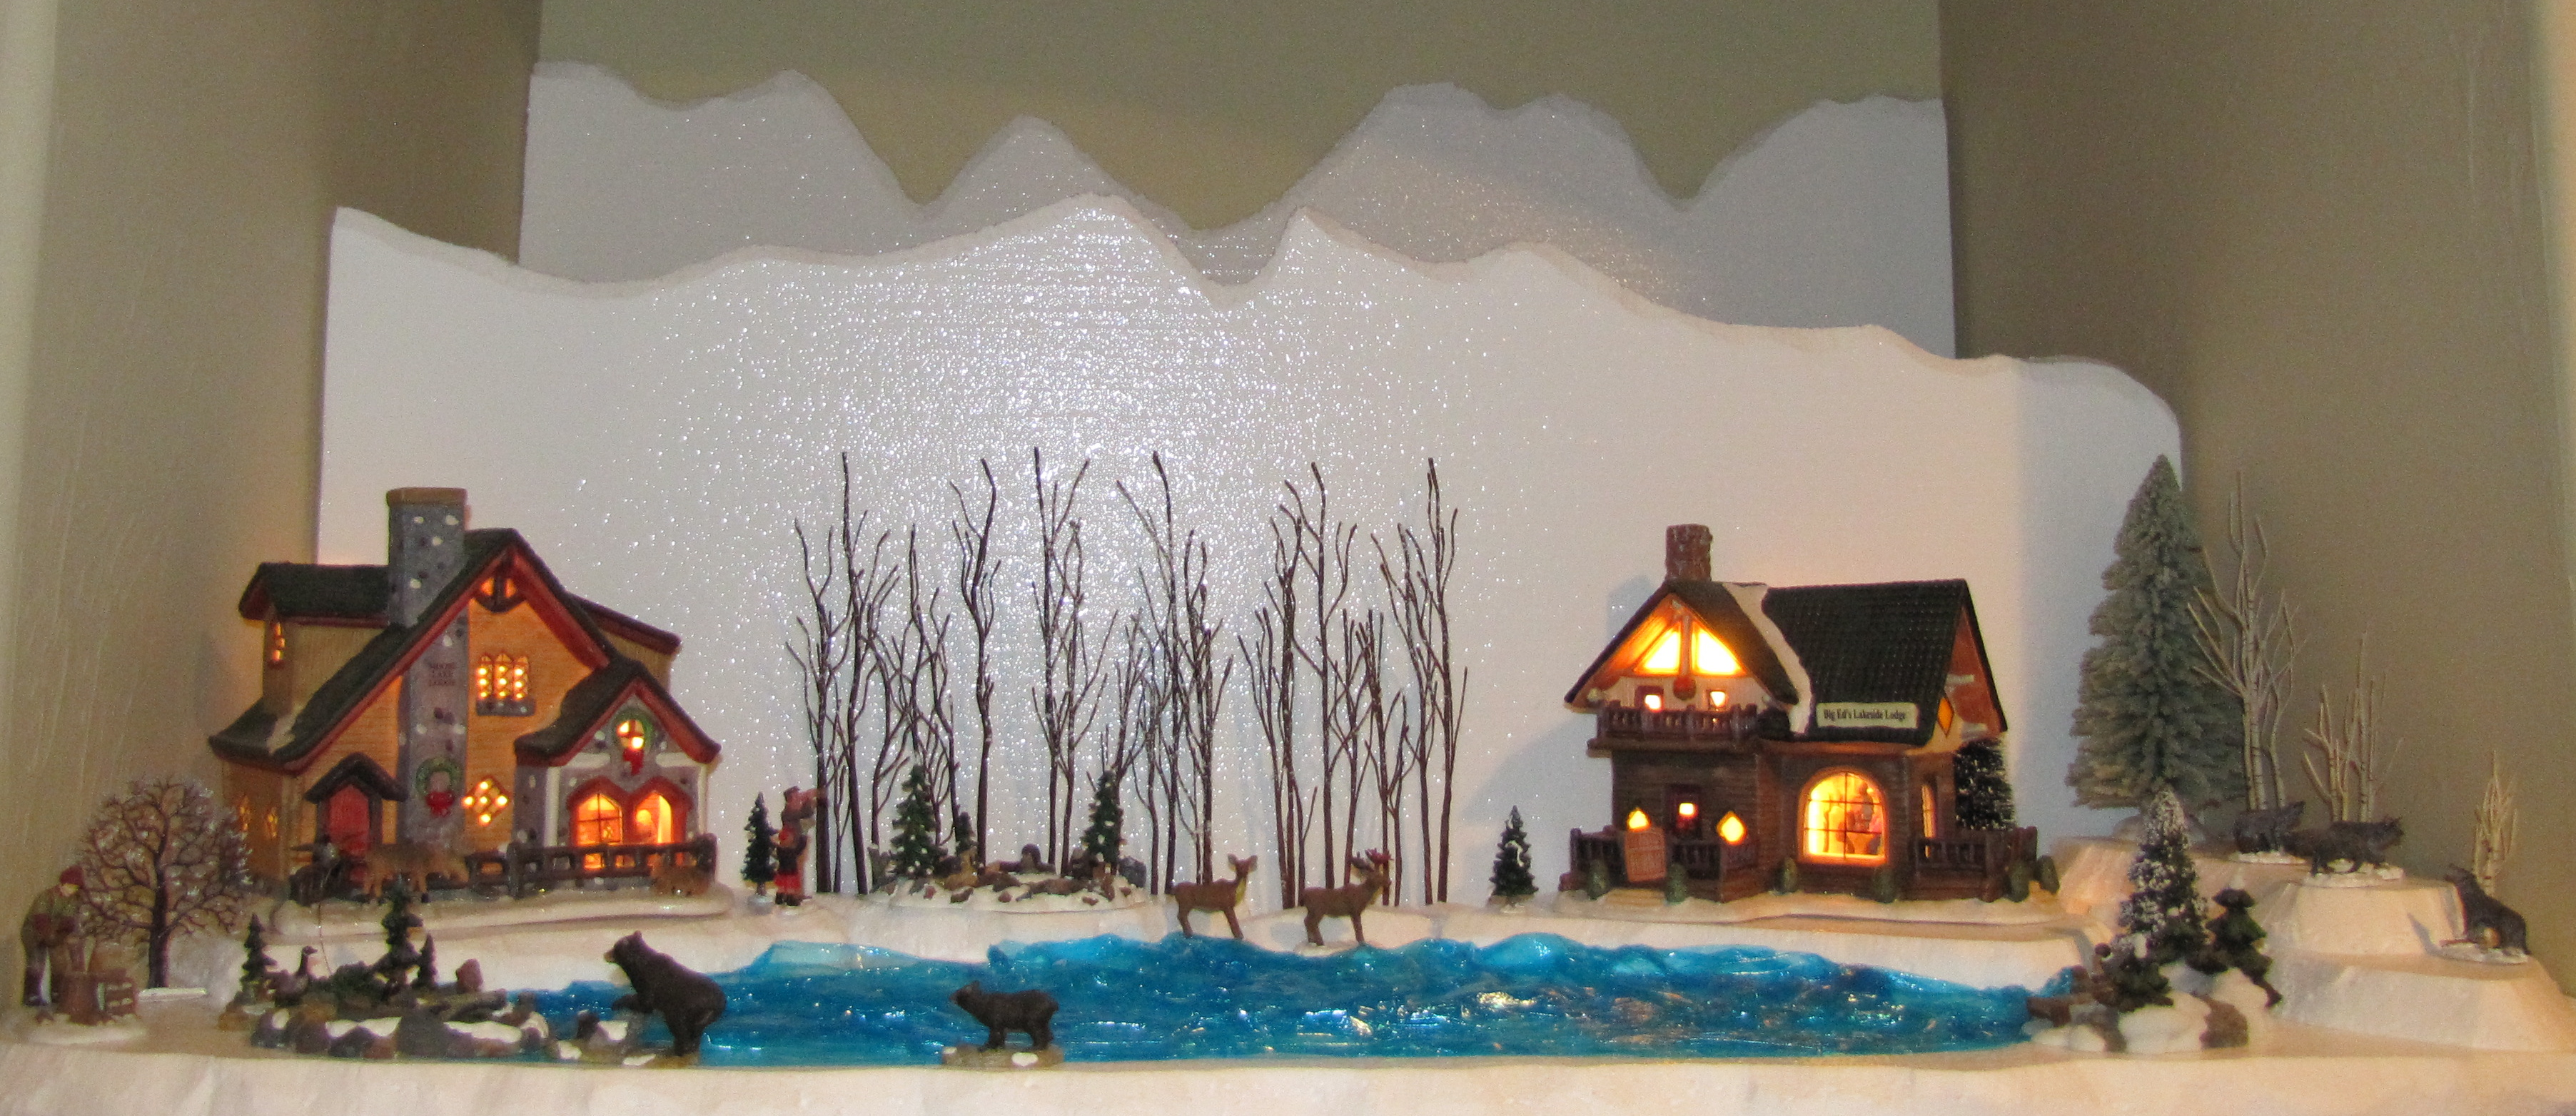 Christmas Village Display Getting To Know CO